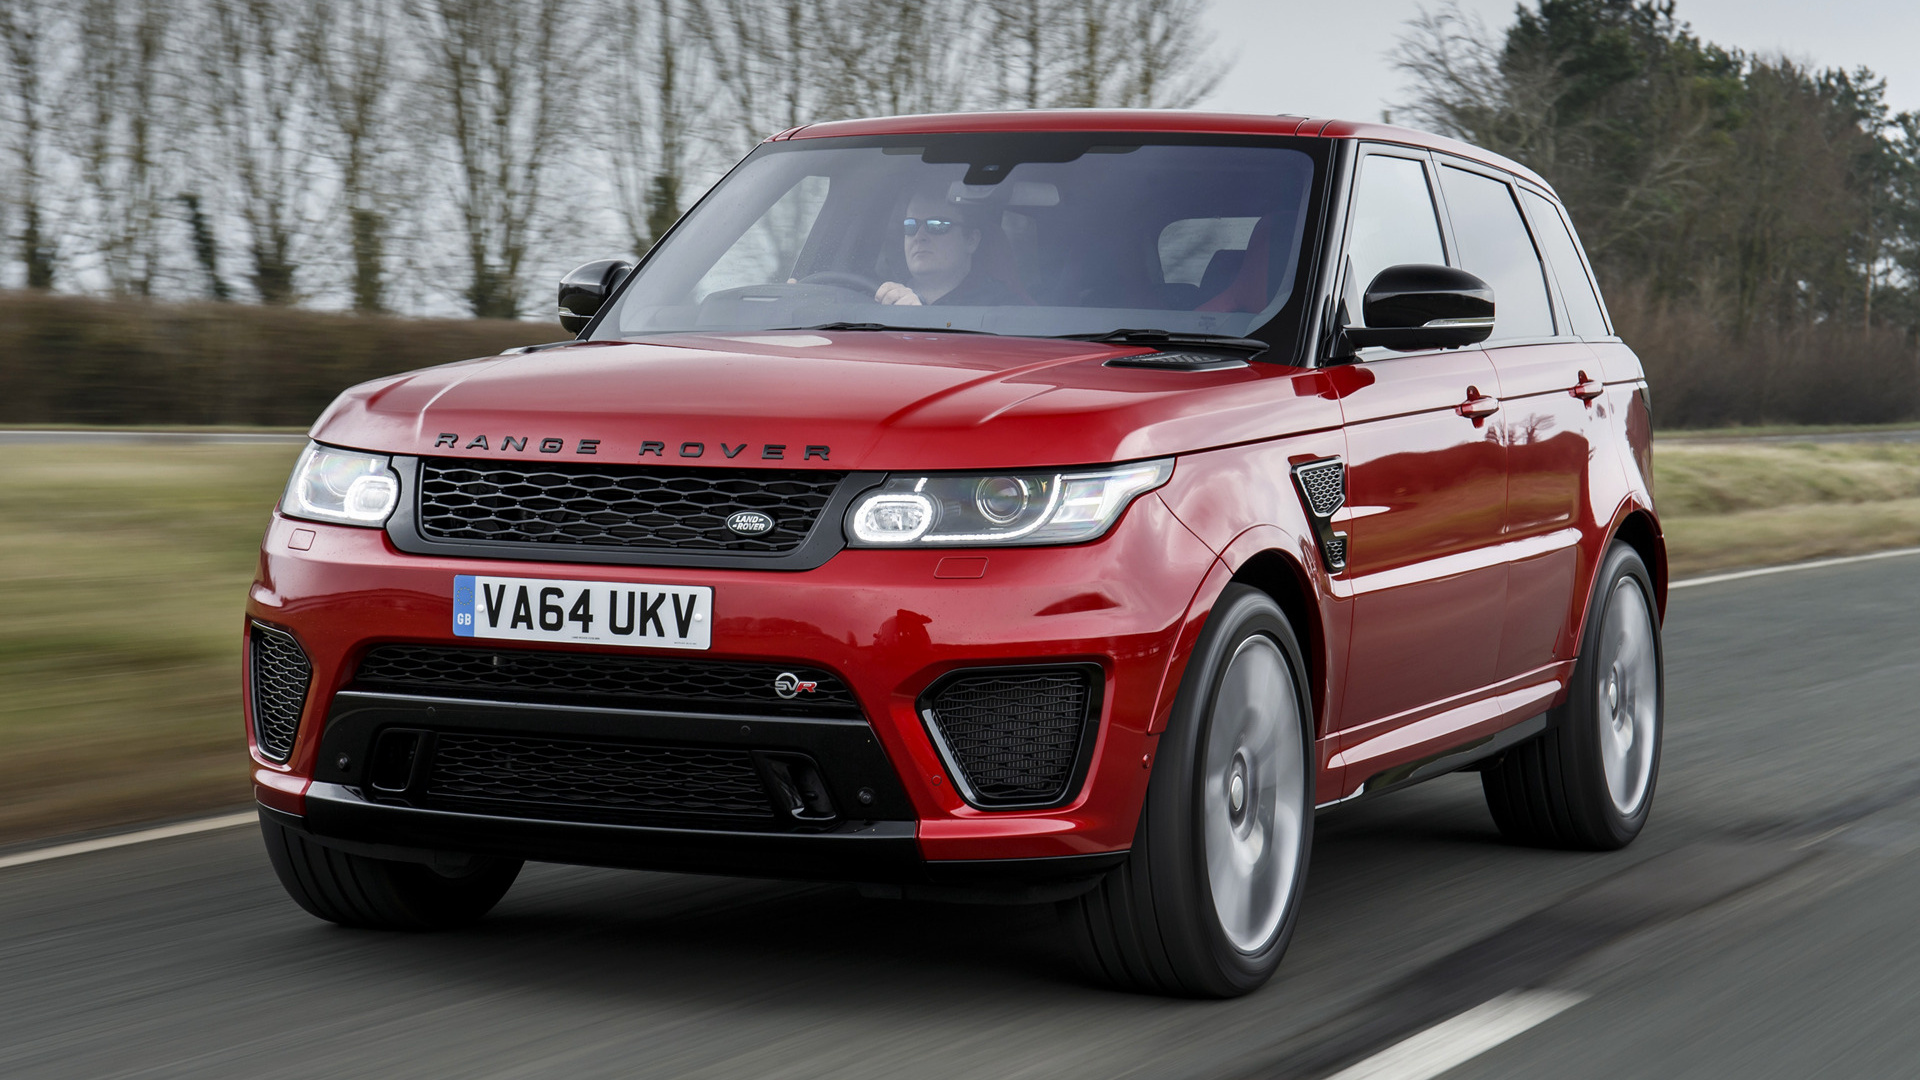 2015 Range Rover Sport Svr Uk Wallpapers And Hd Images